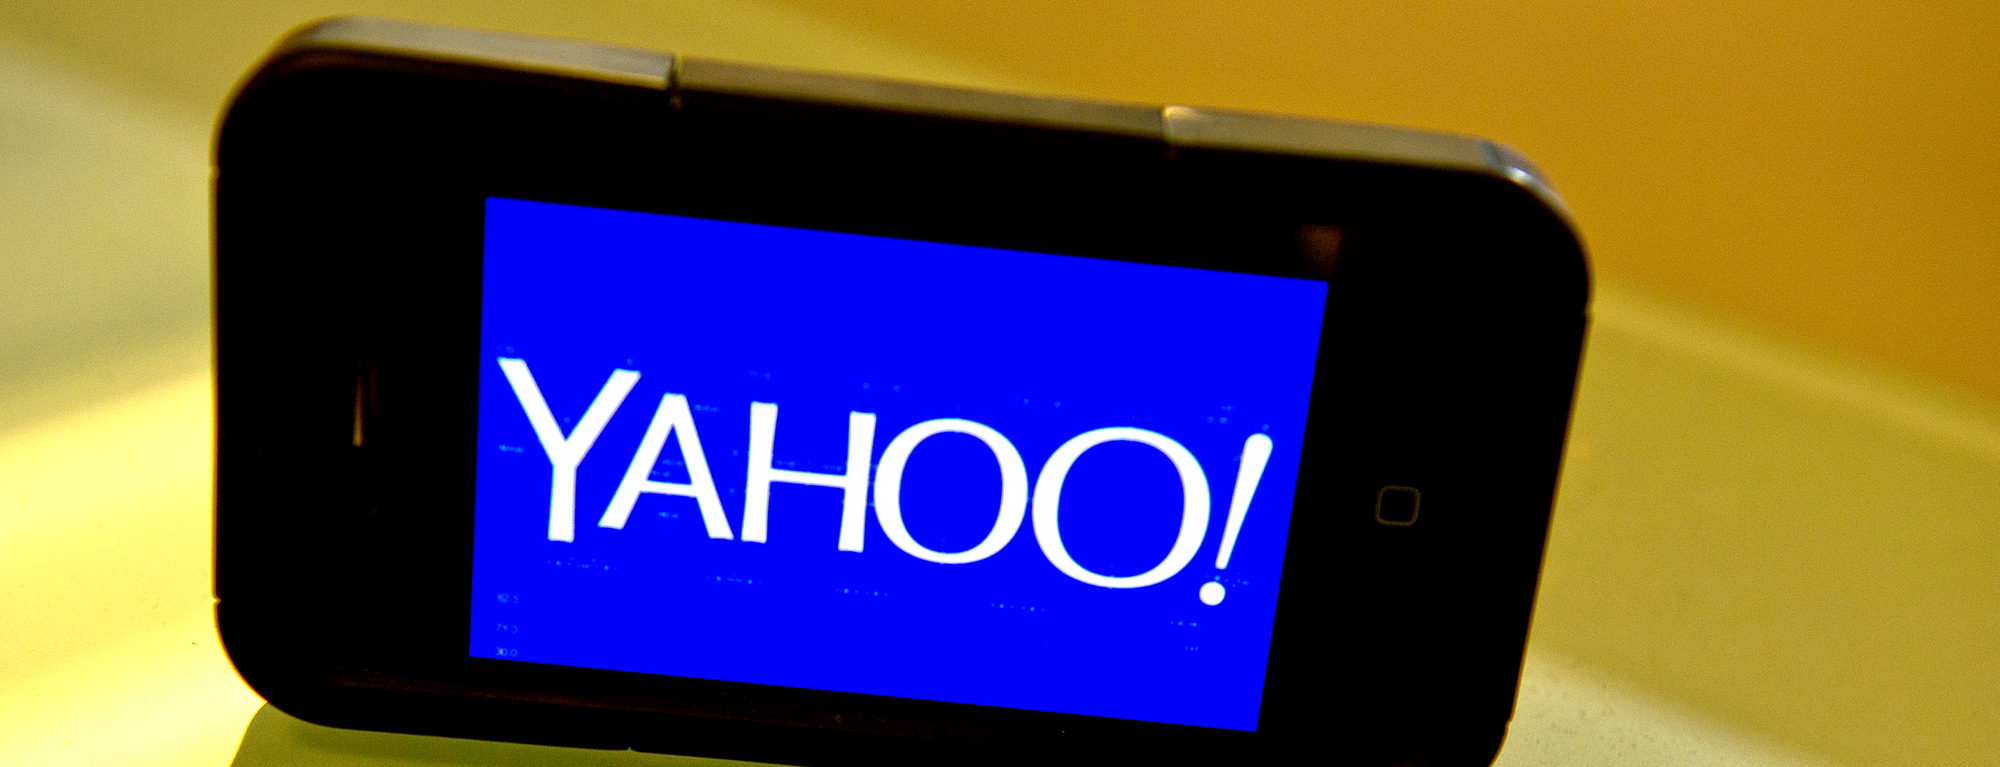 Yahoo Reportedly Tapping Yelp for Local Business Data